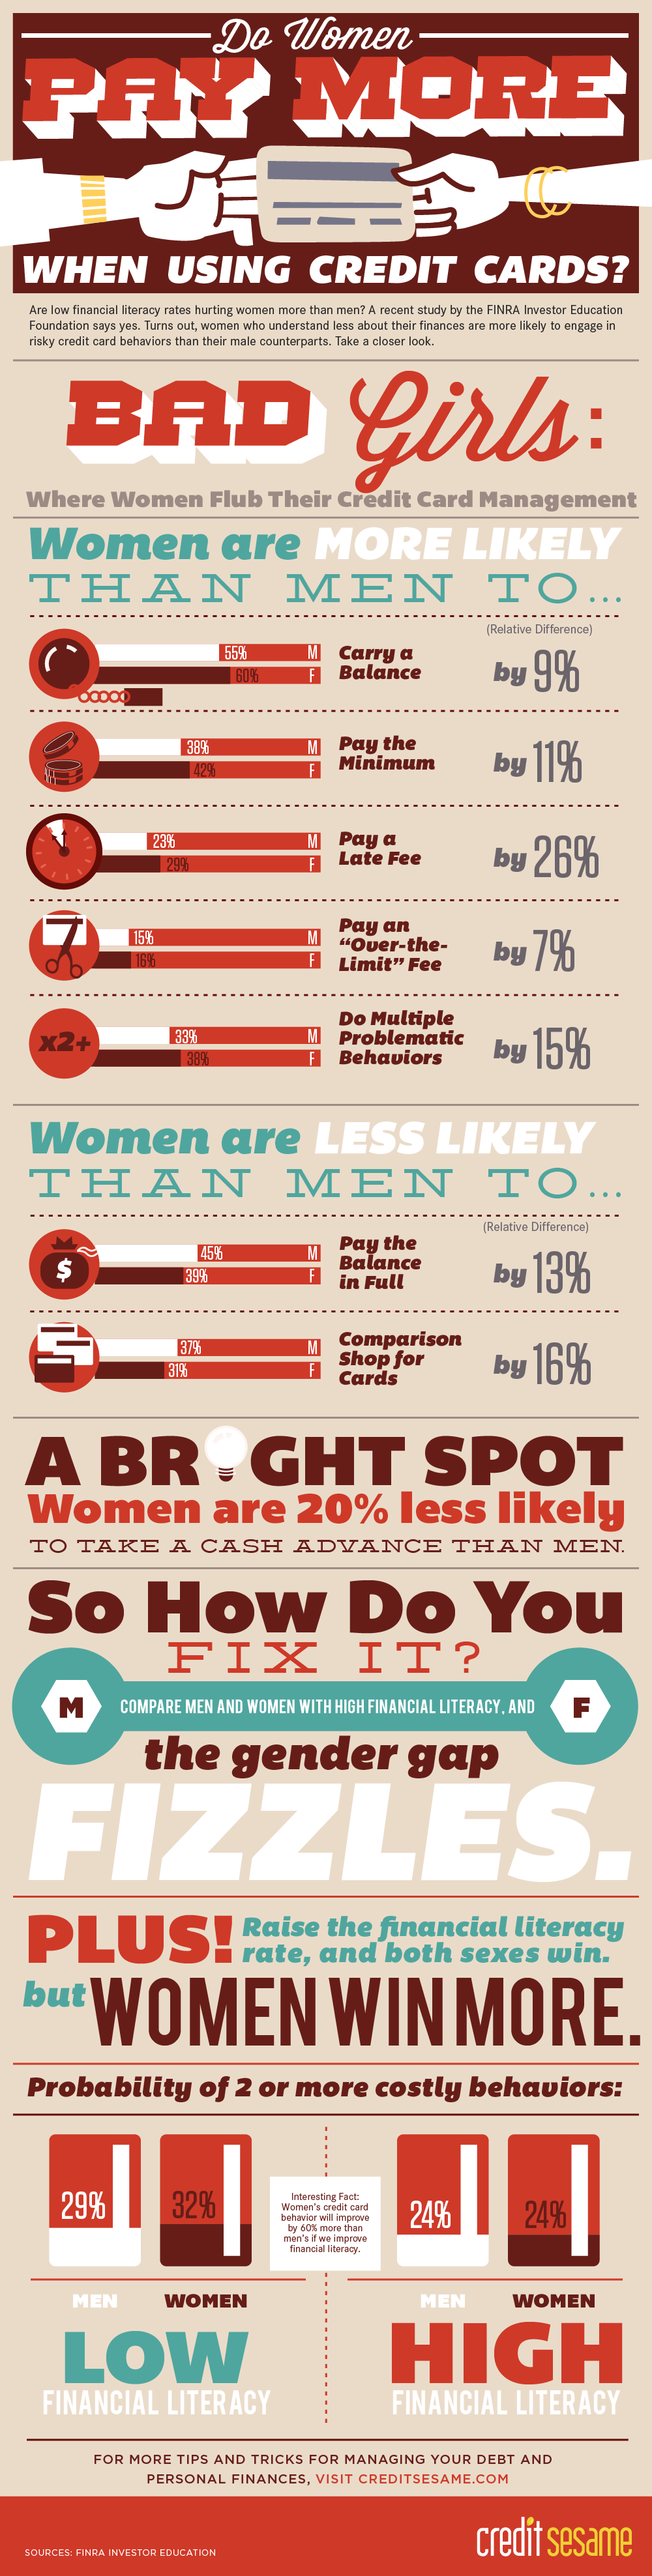 Women and Credit Cards Infographic Provided by CreditSesame.com